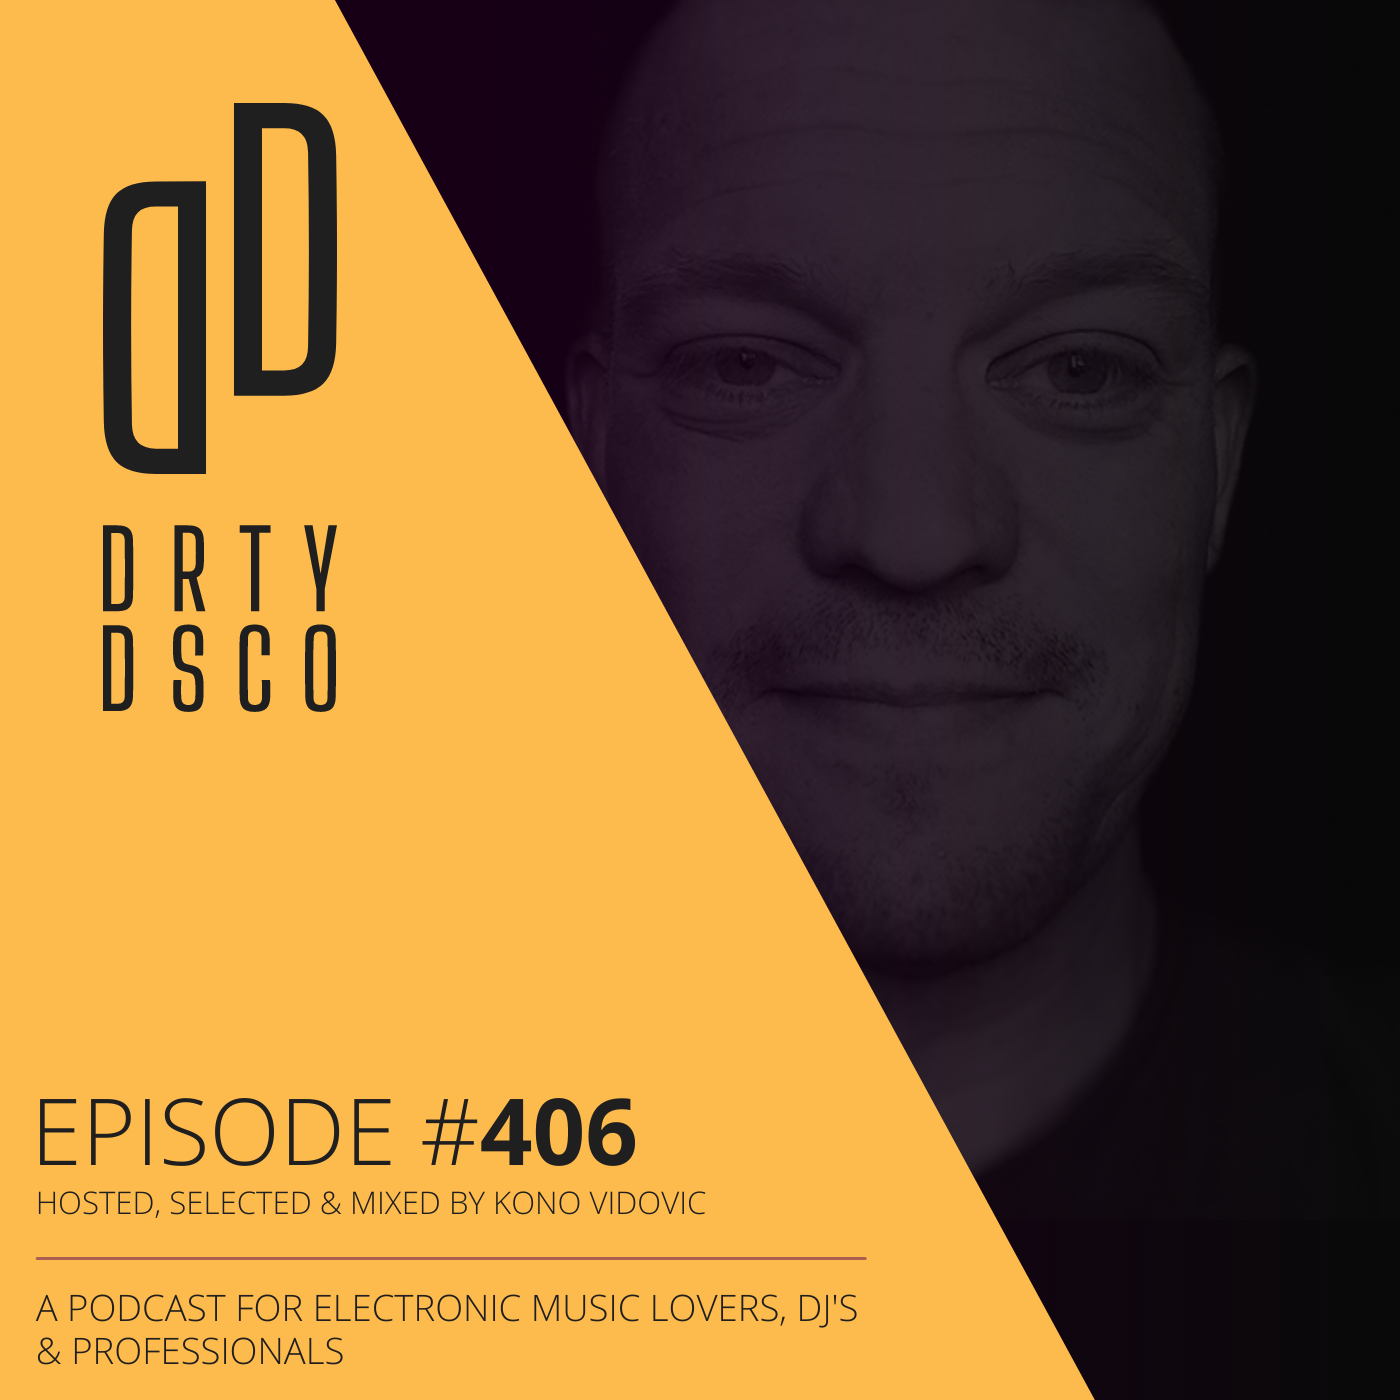 new music selection podcast 406 dirty disco